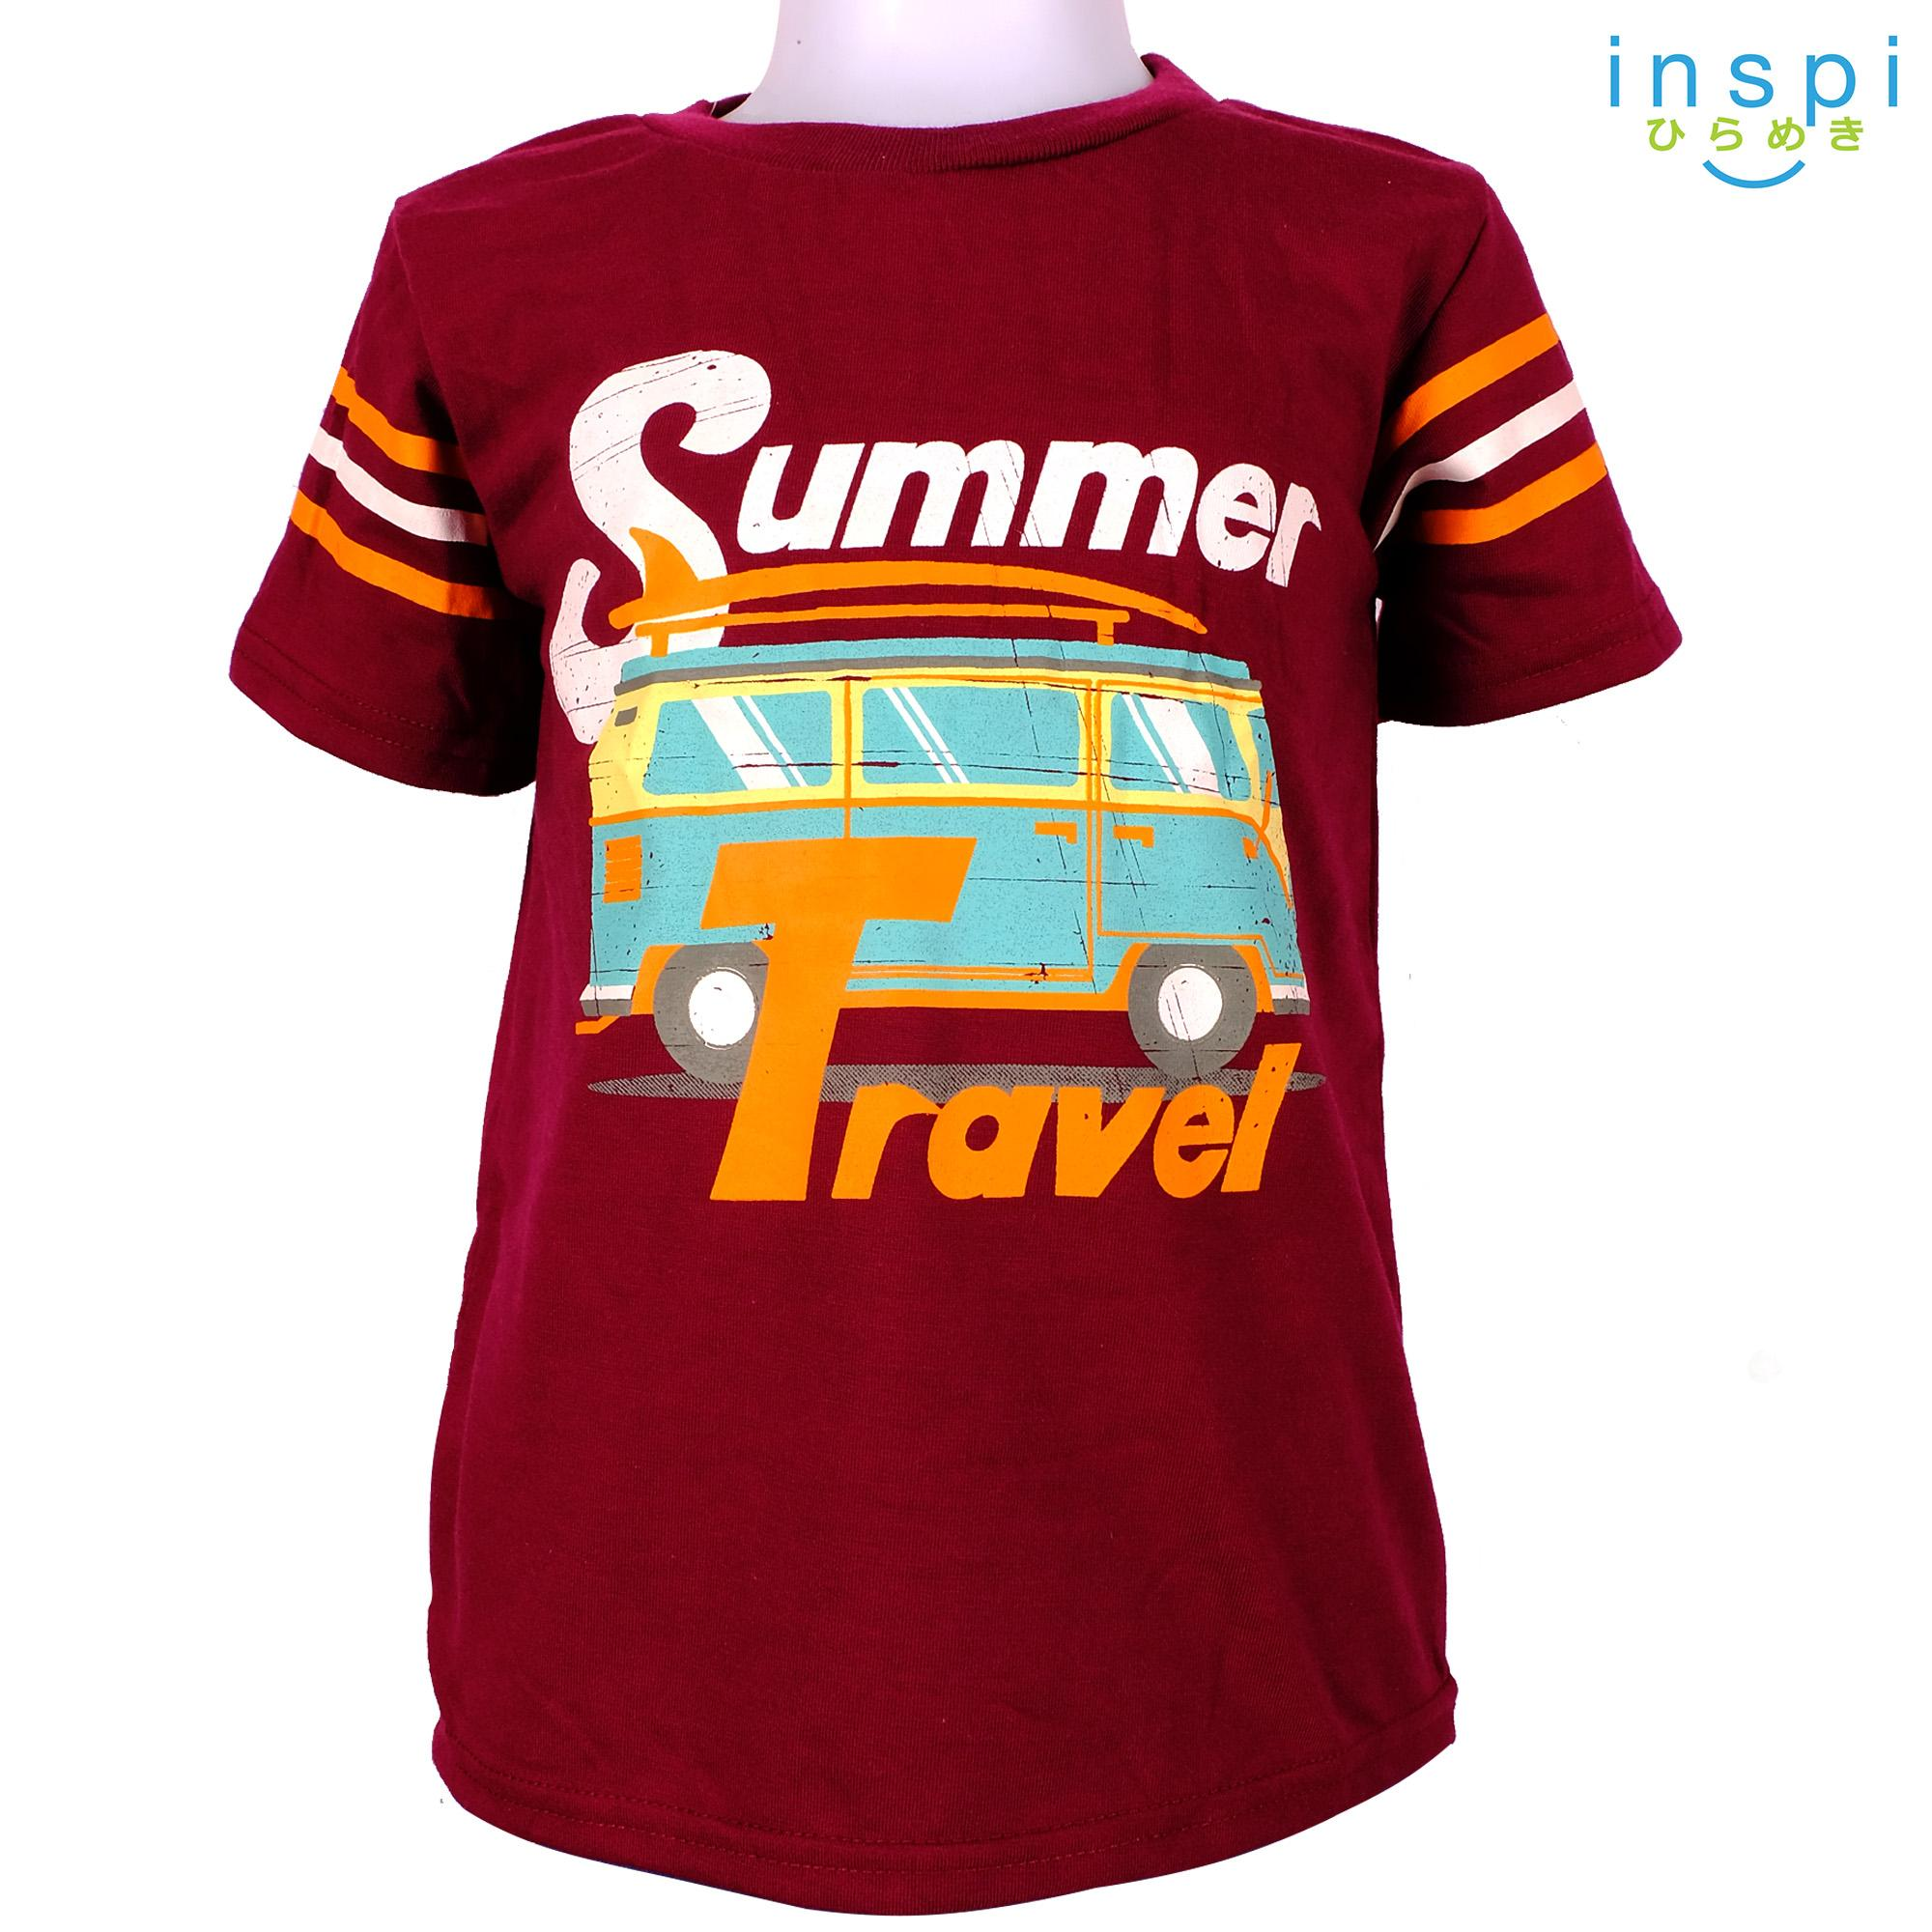 Setelan Kiddy Maroon Daftar Harga Termurah Terkini Dan Terlengkap Enfagrow A 3 St Birthday Pack Free Produk Voucher Senilai 300000 Inspi Kids Boys Travel Tshirt Top Tee T Shirt For Shirts Clothing